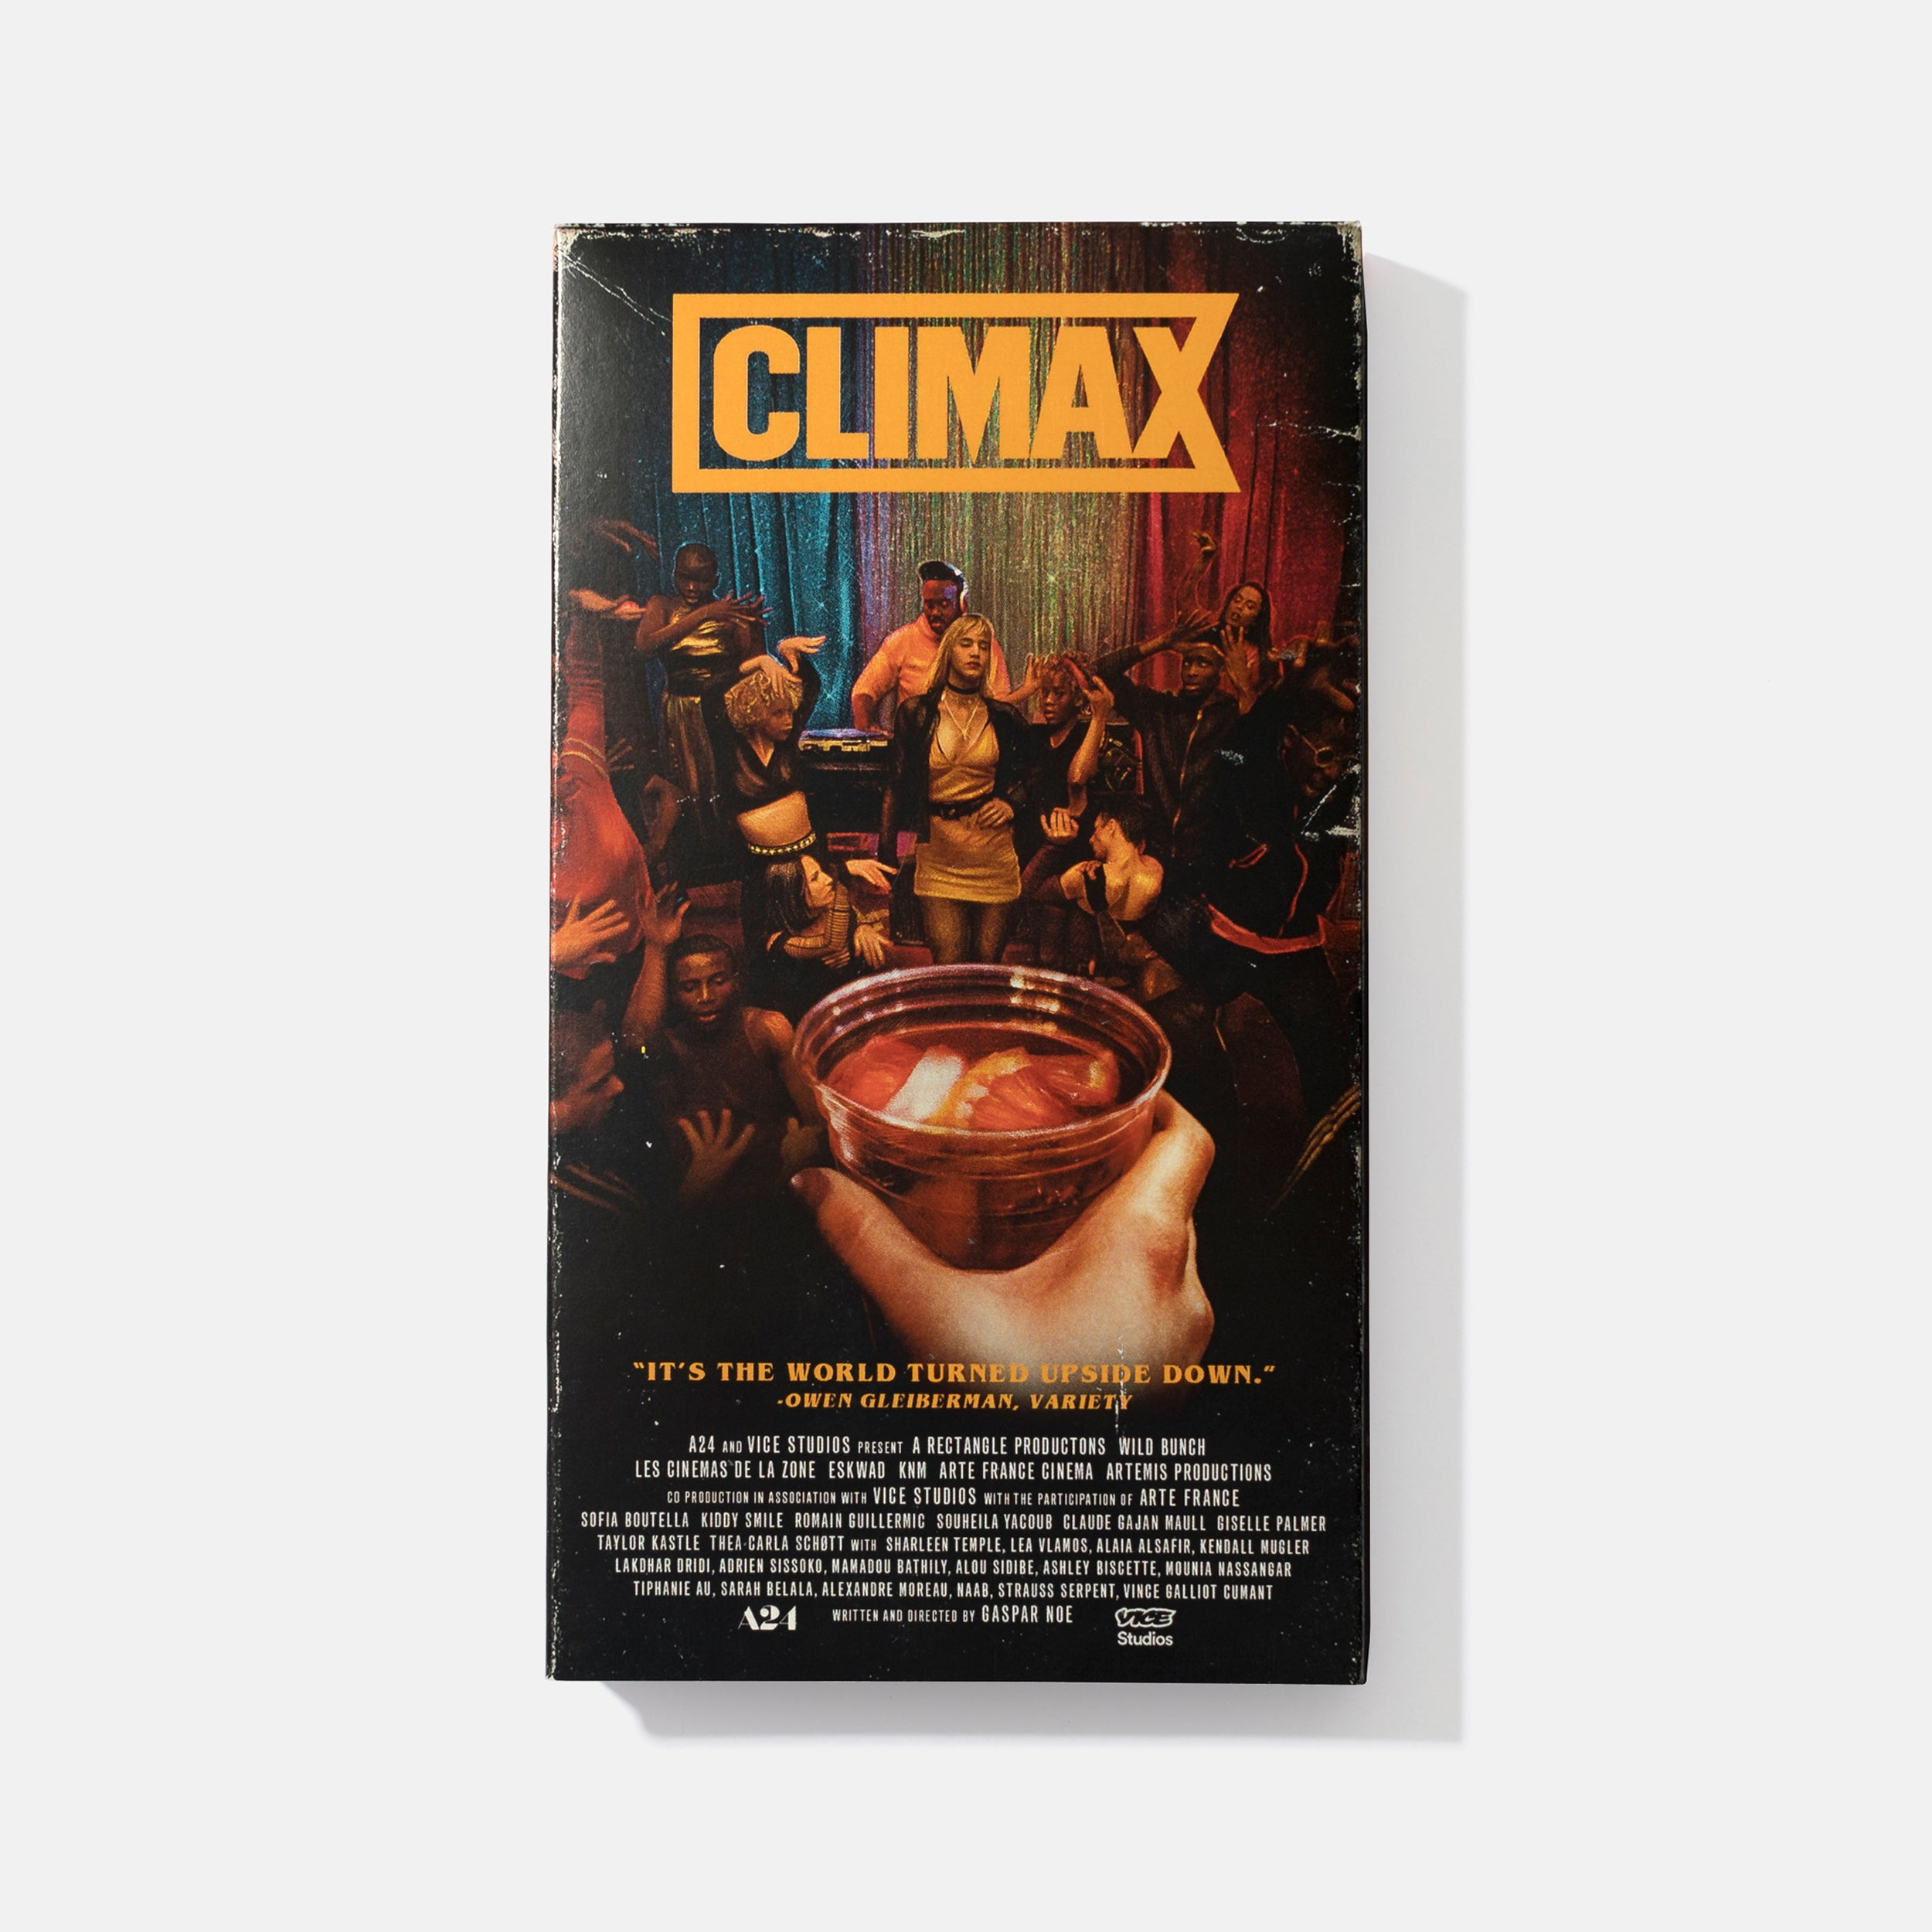 Climax Limited Edition VHS